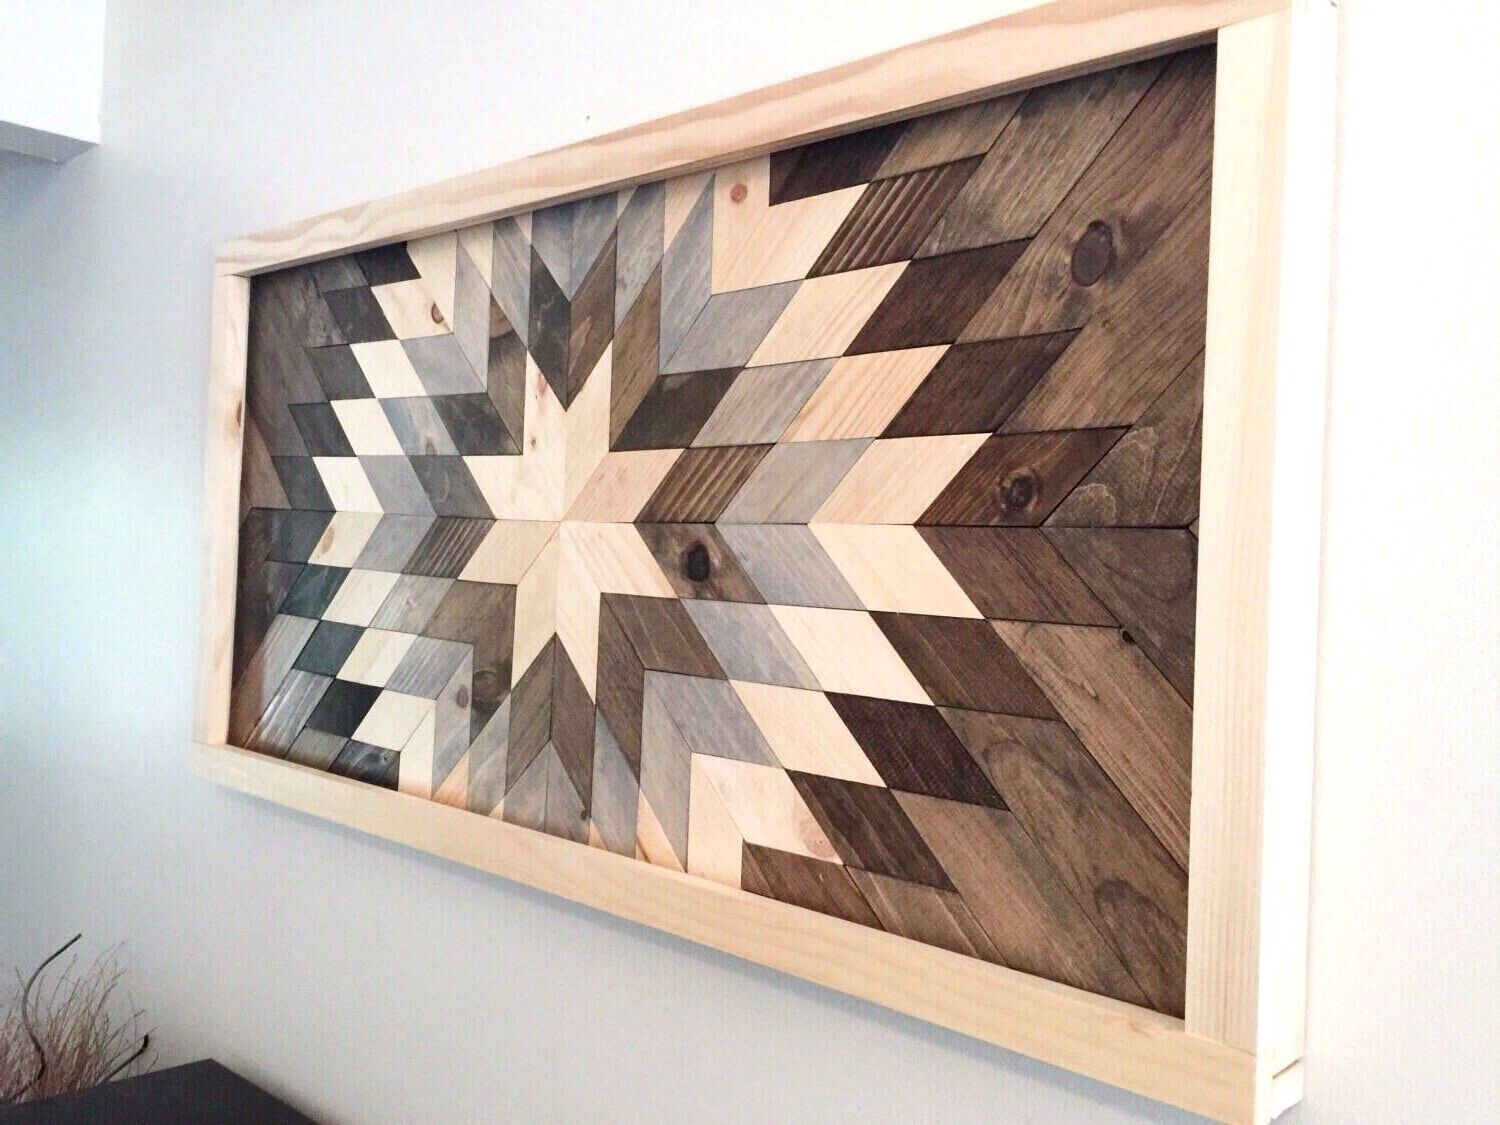 Wood Decor Wall Art Wood Wall Art Diy Excellent Wooden Decor Ideas For Newest Diy Wood Wall Art (View 17 of 20)